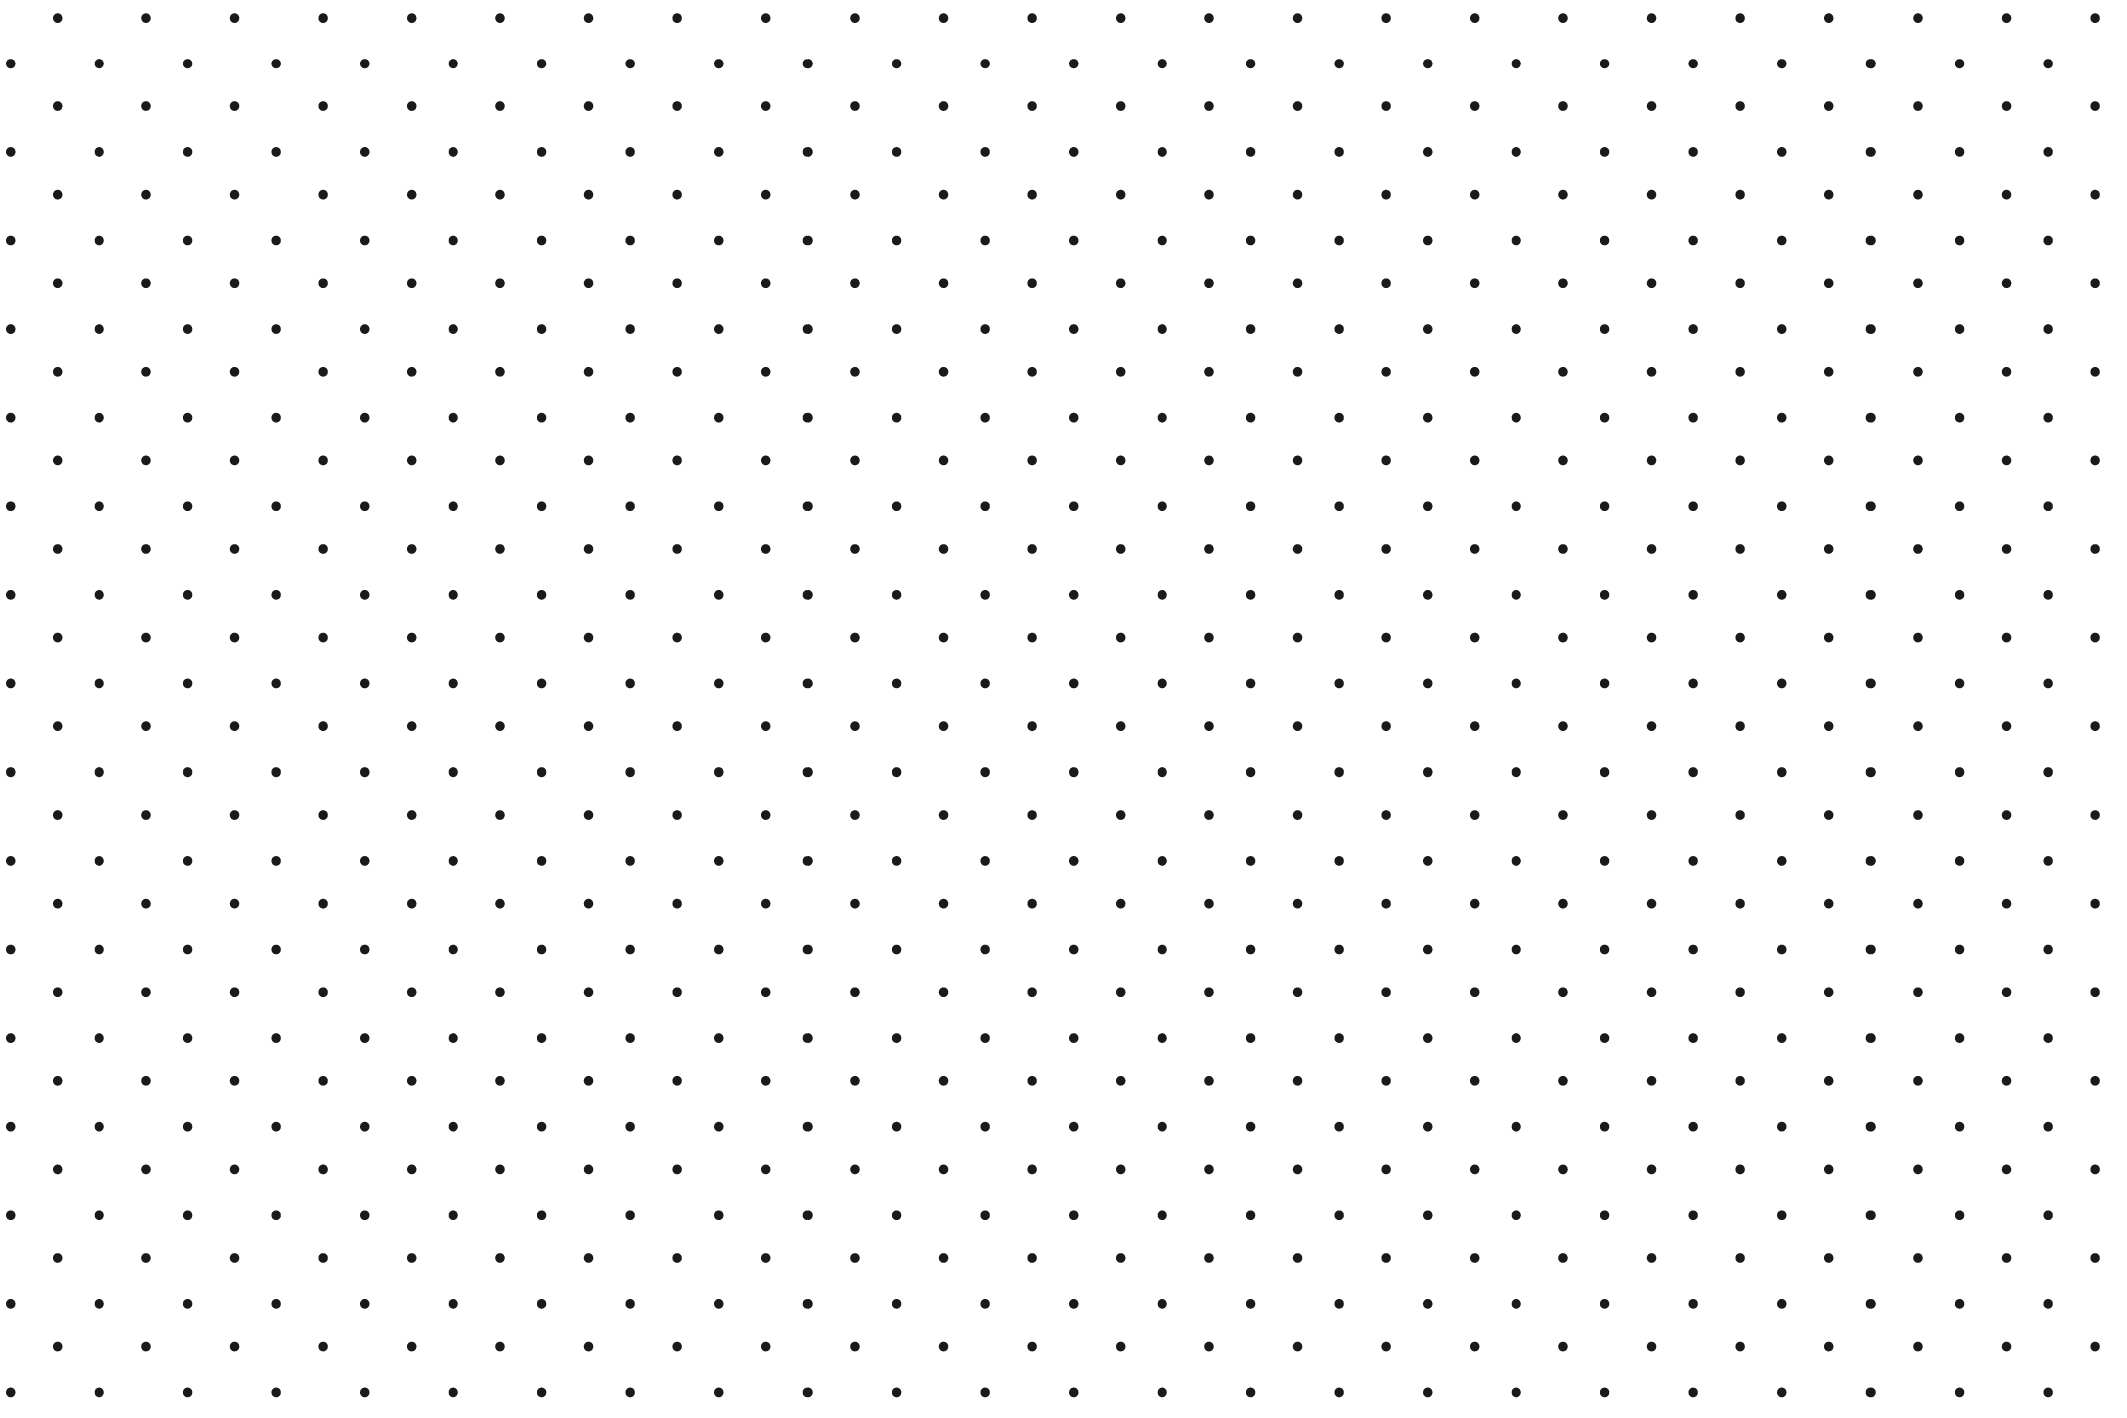 Geometric seamless patterns. B&W. example image 8